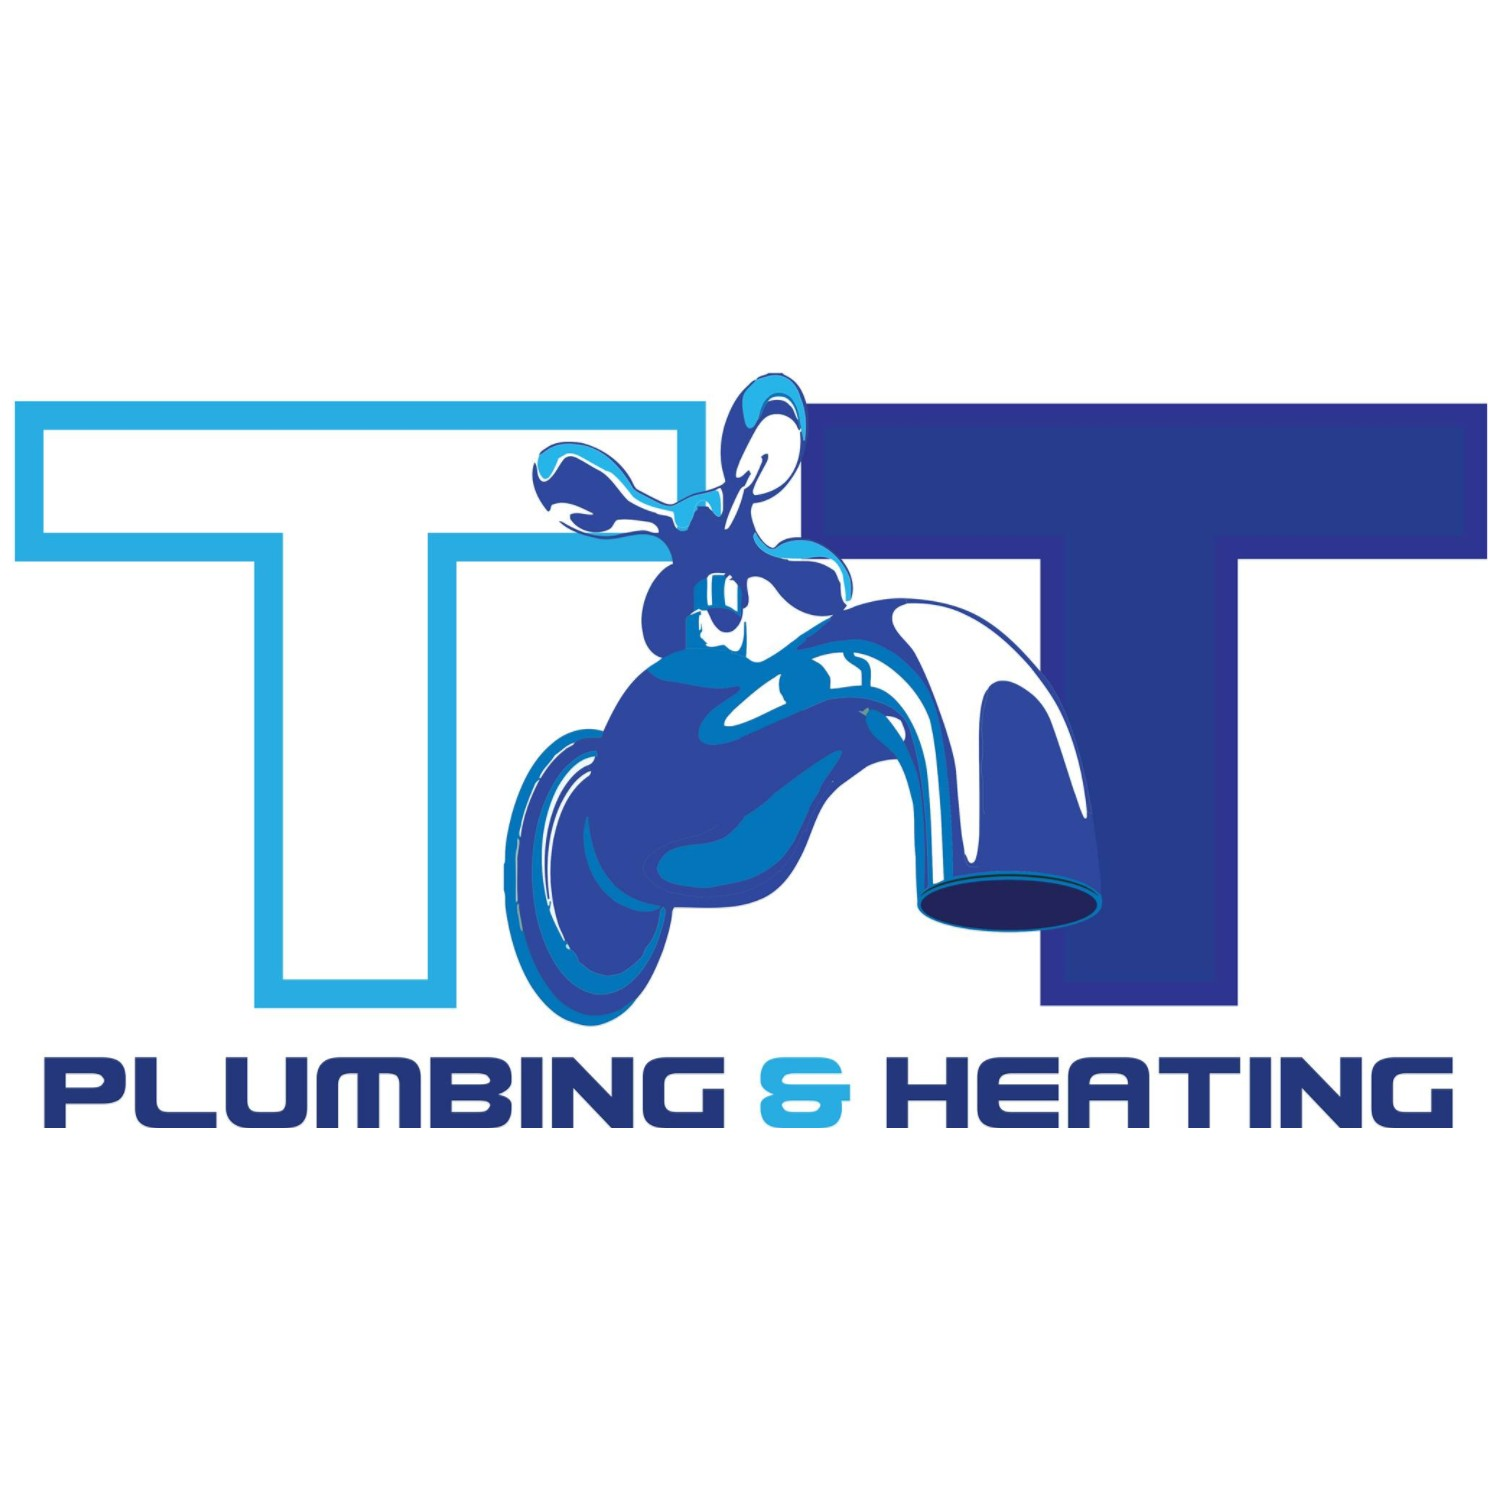 Logo of 24-7 TT Plumbing & Heating Plumbing And Heating In Cricklewood, London